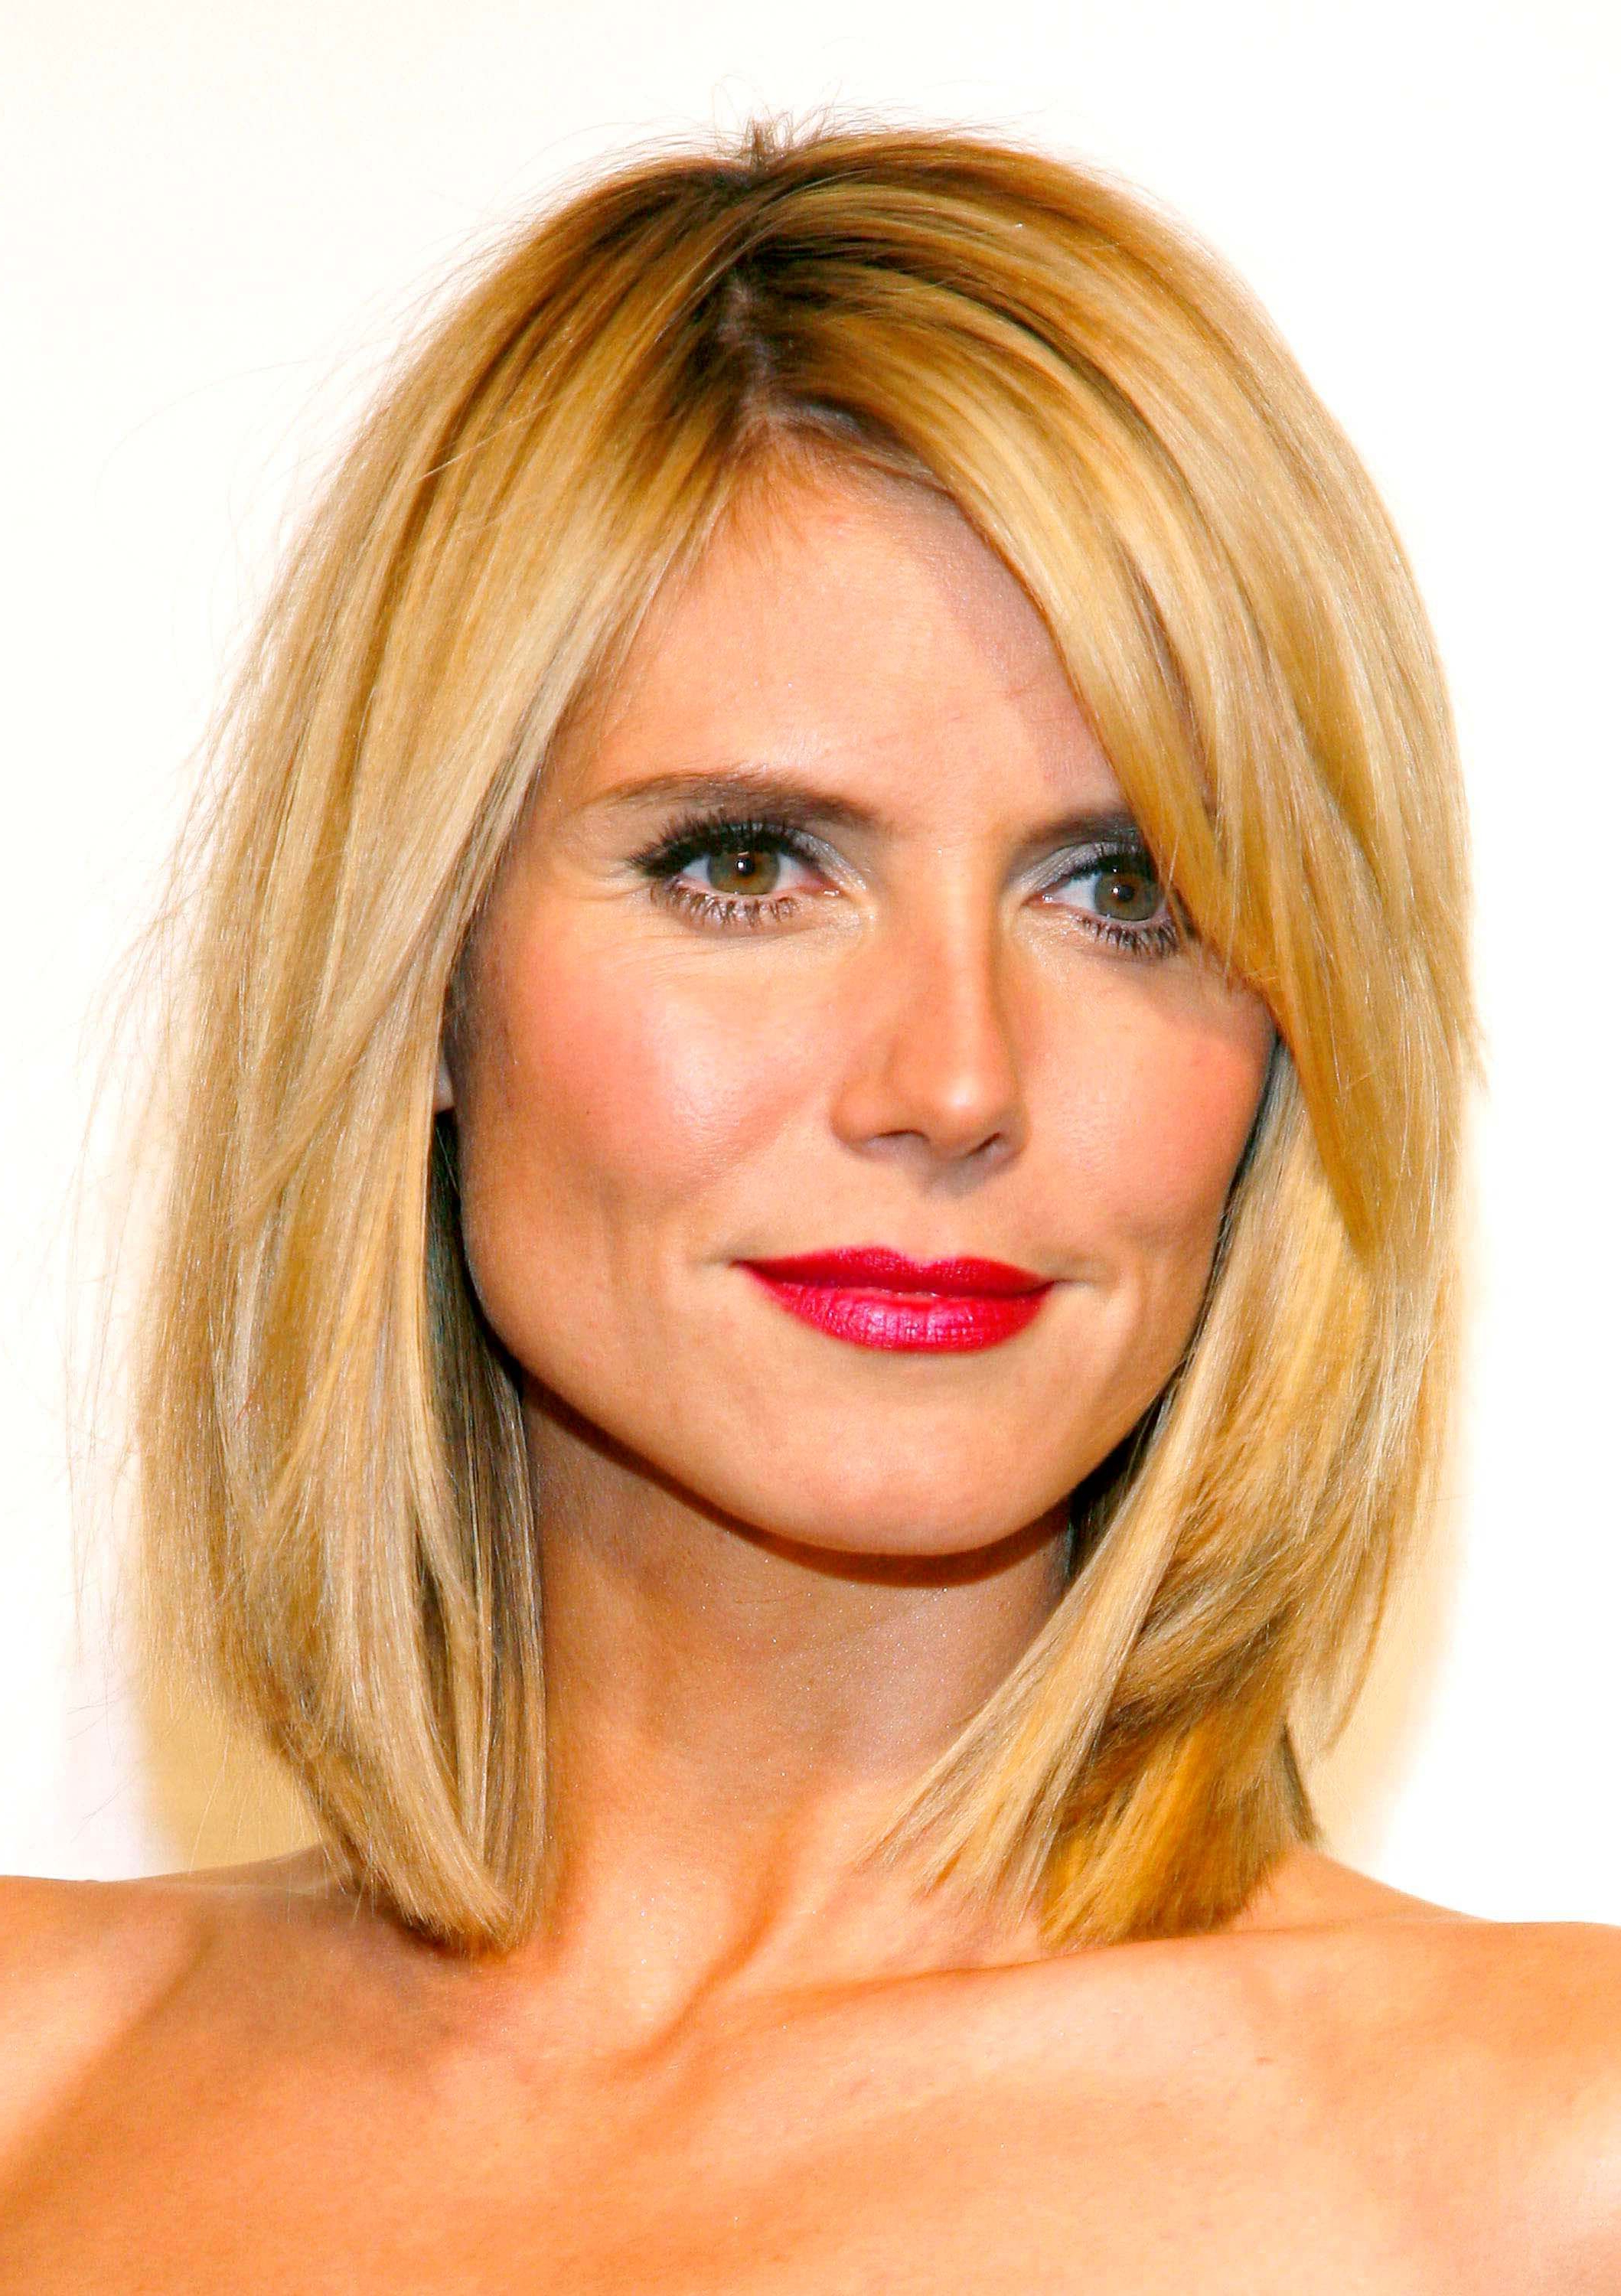 Struggling To Find Good Short Hairstyles For Square Faces? Here's Regarding Short Haircuts For Square Face (View 19 of 25)